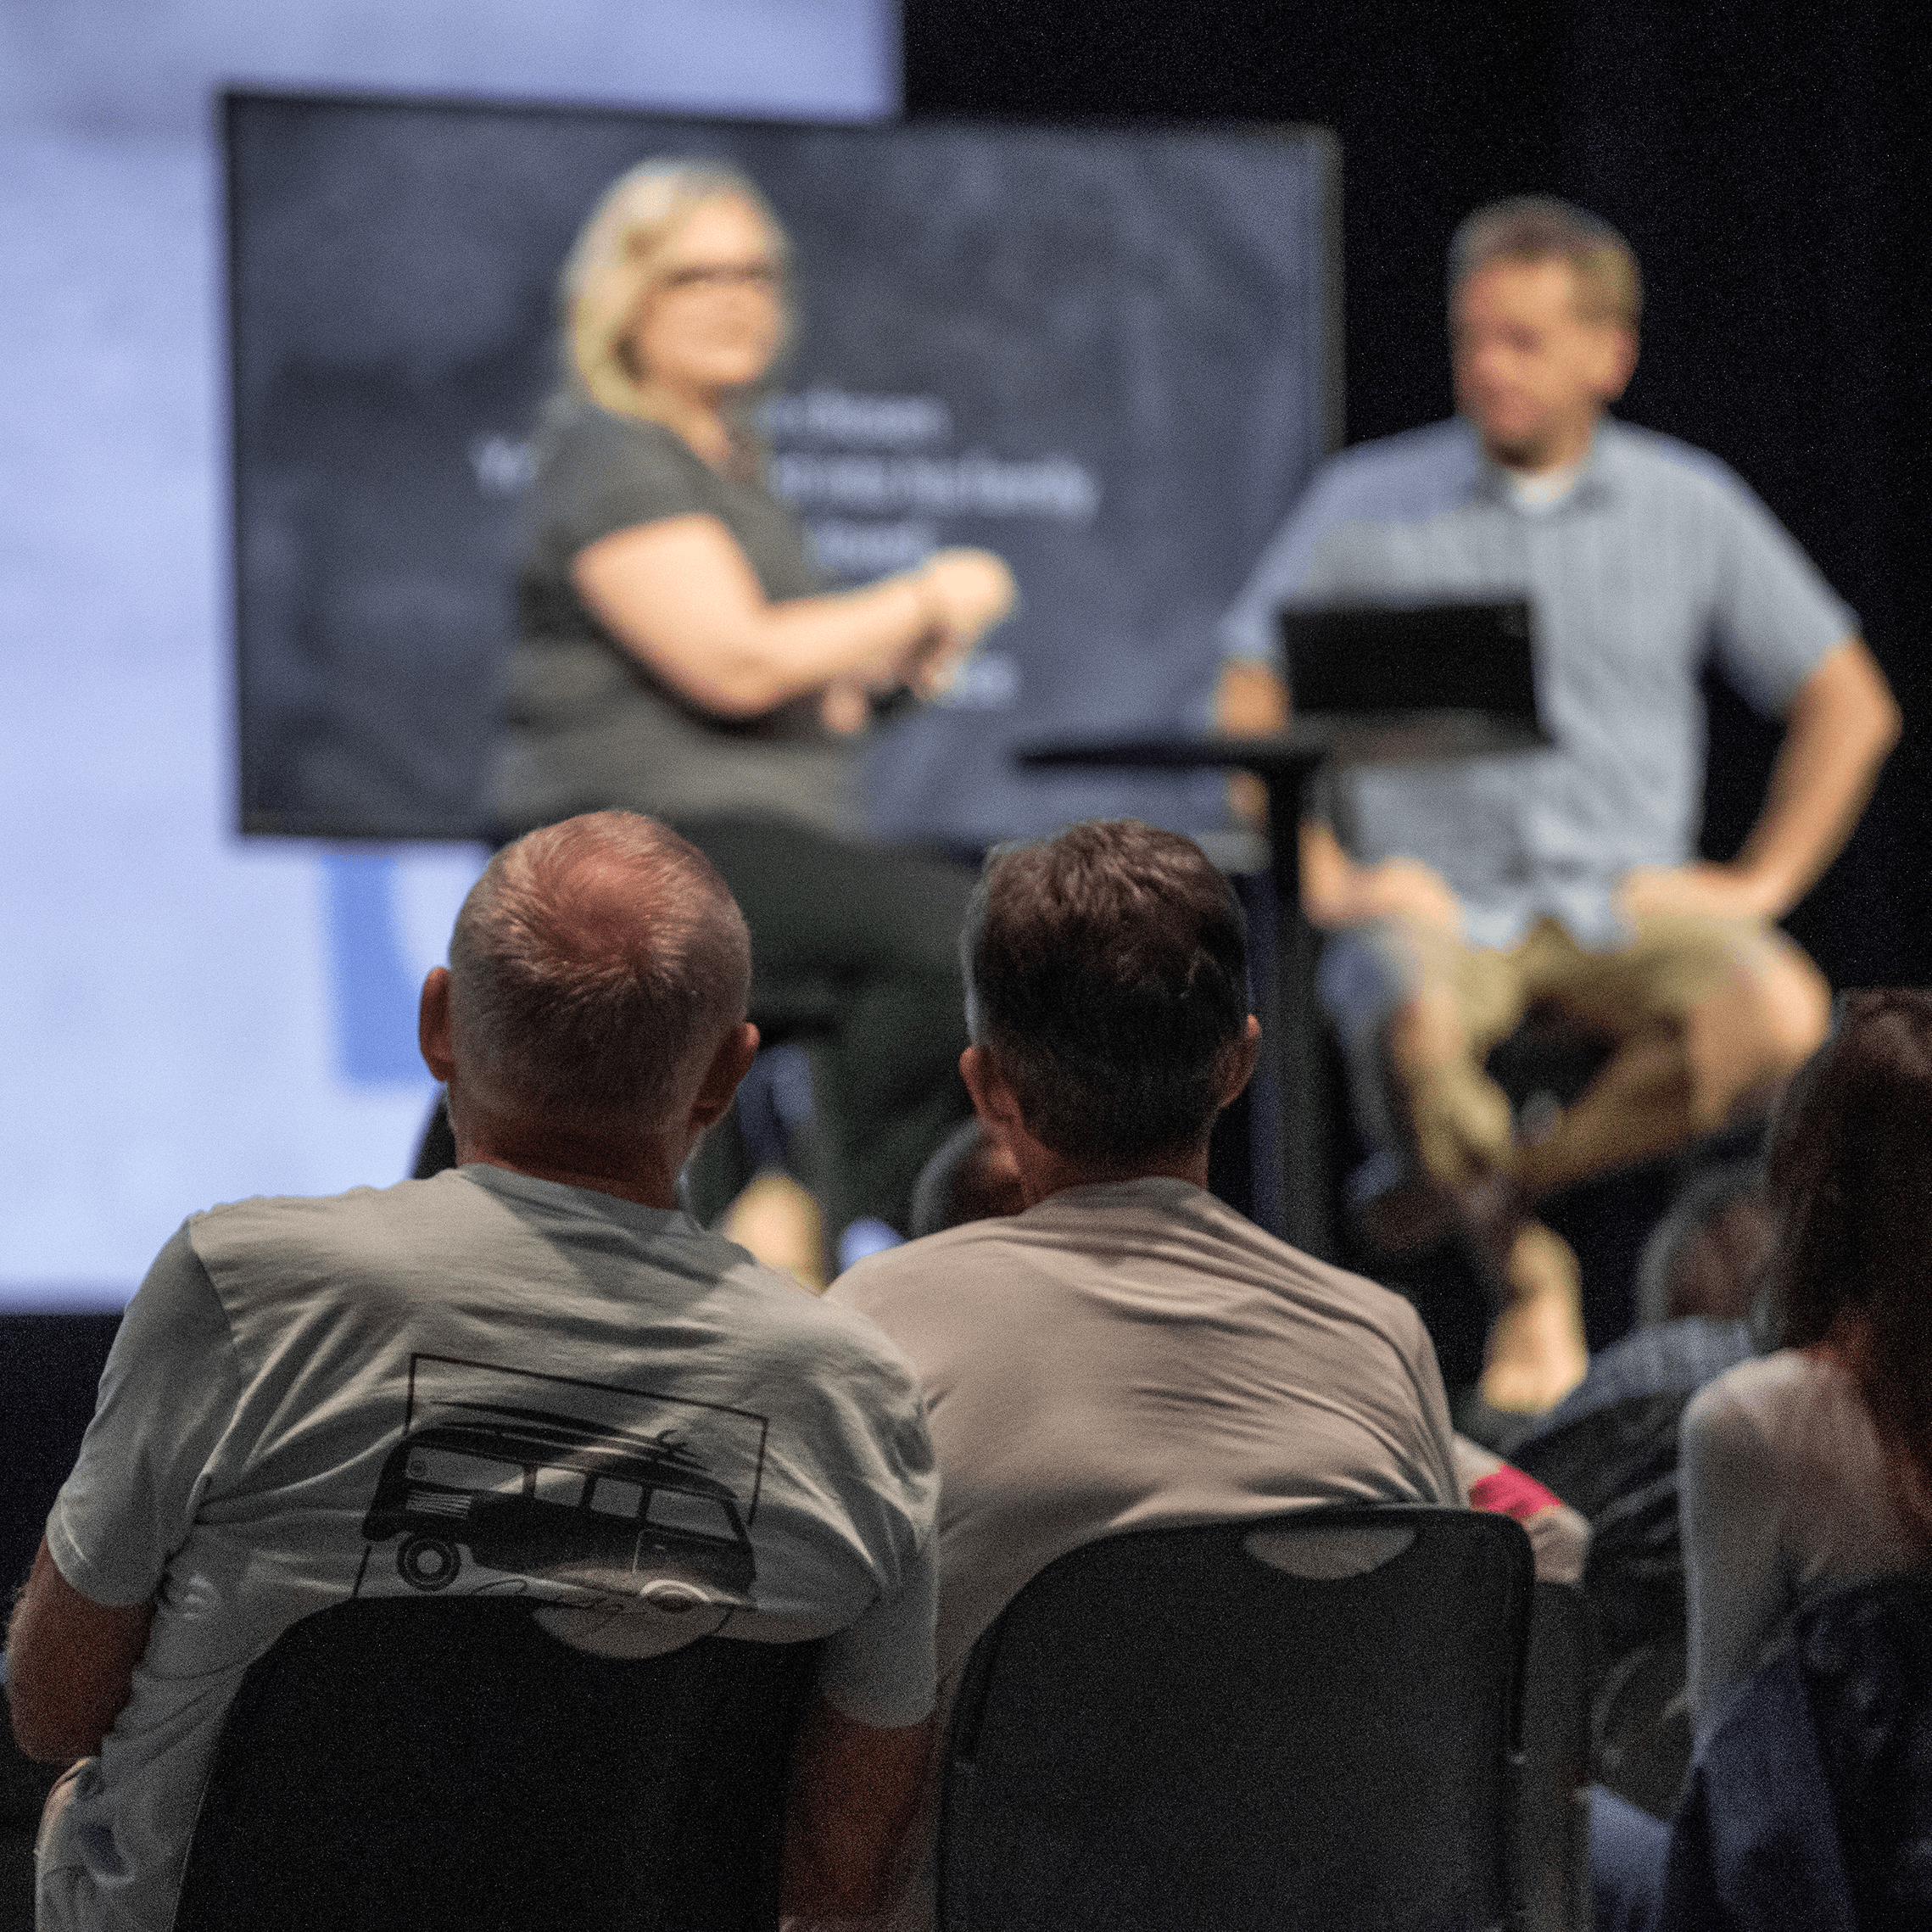 A couple watching a man and woman speaking from a stage with a screen in the background.